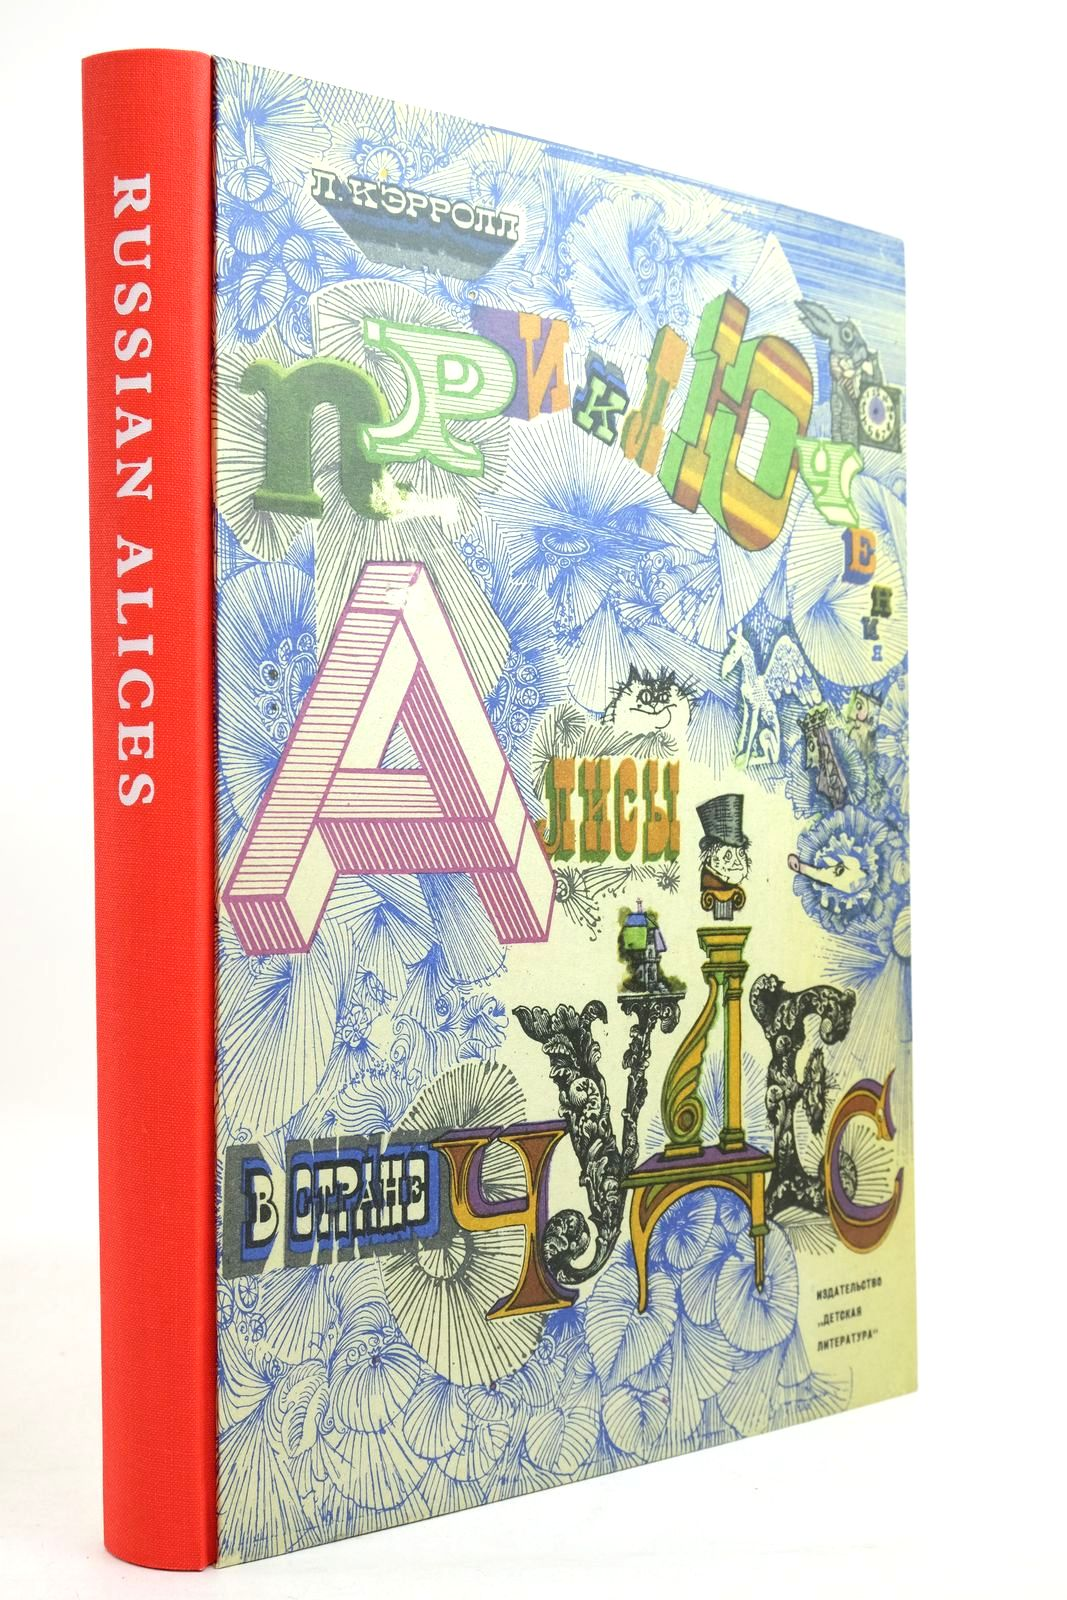 Russian Alices: Illustrated Editions of Alice In Wonderland From The USSR and The Post-Soviet Era